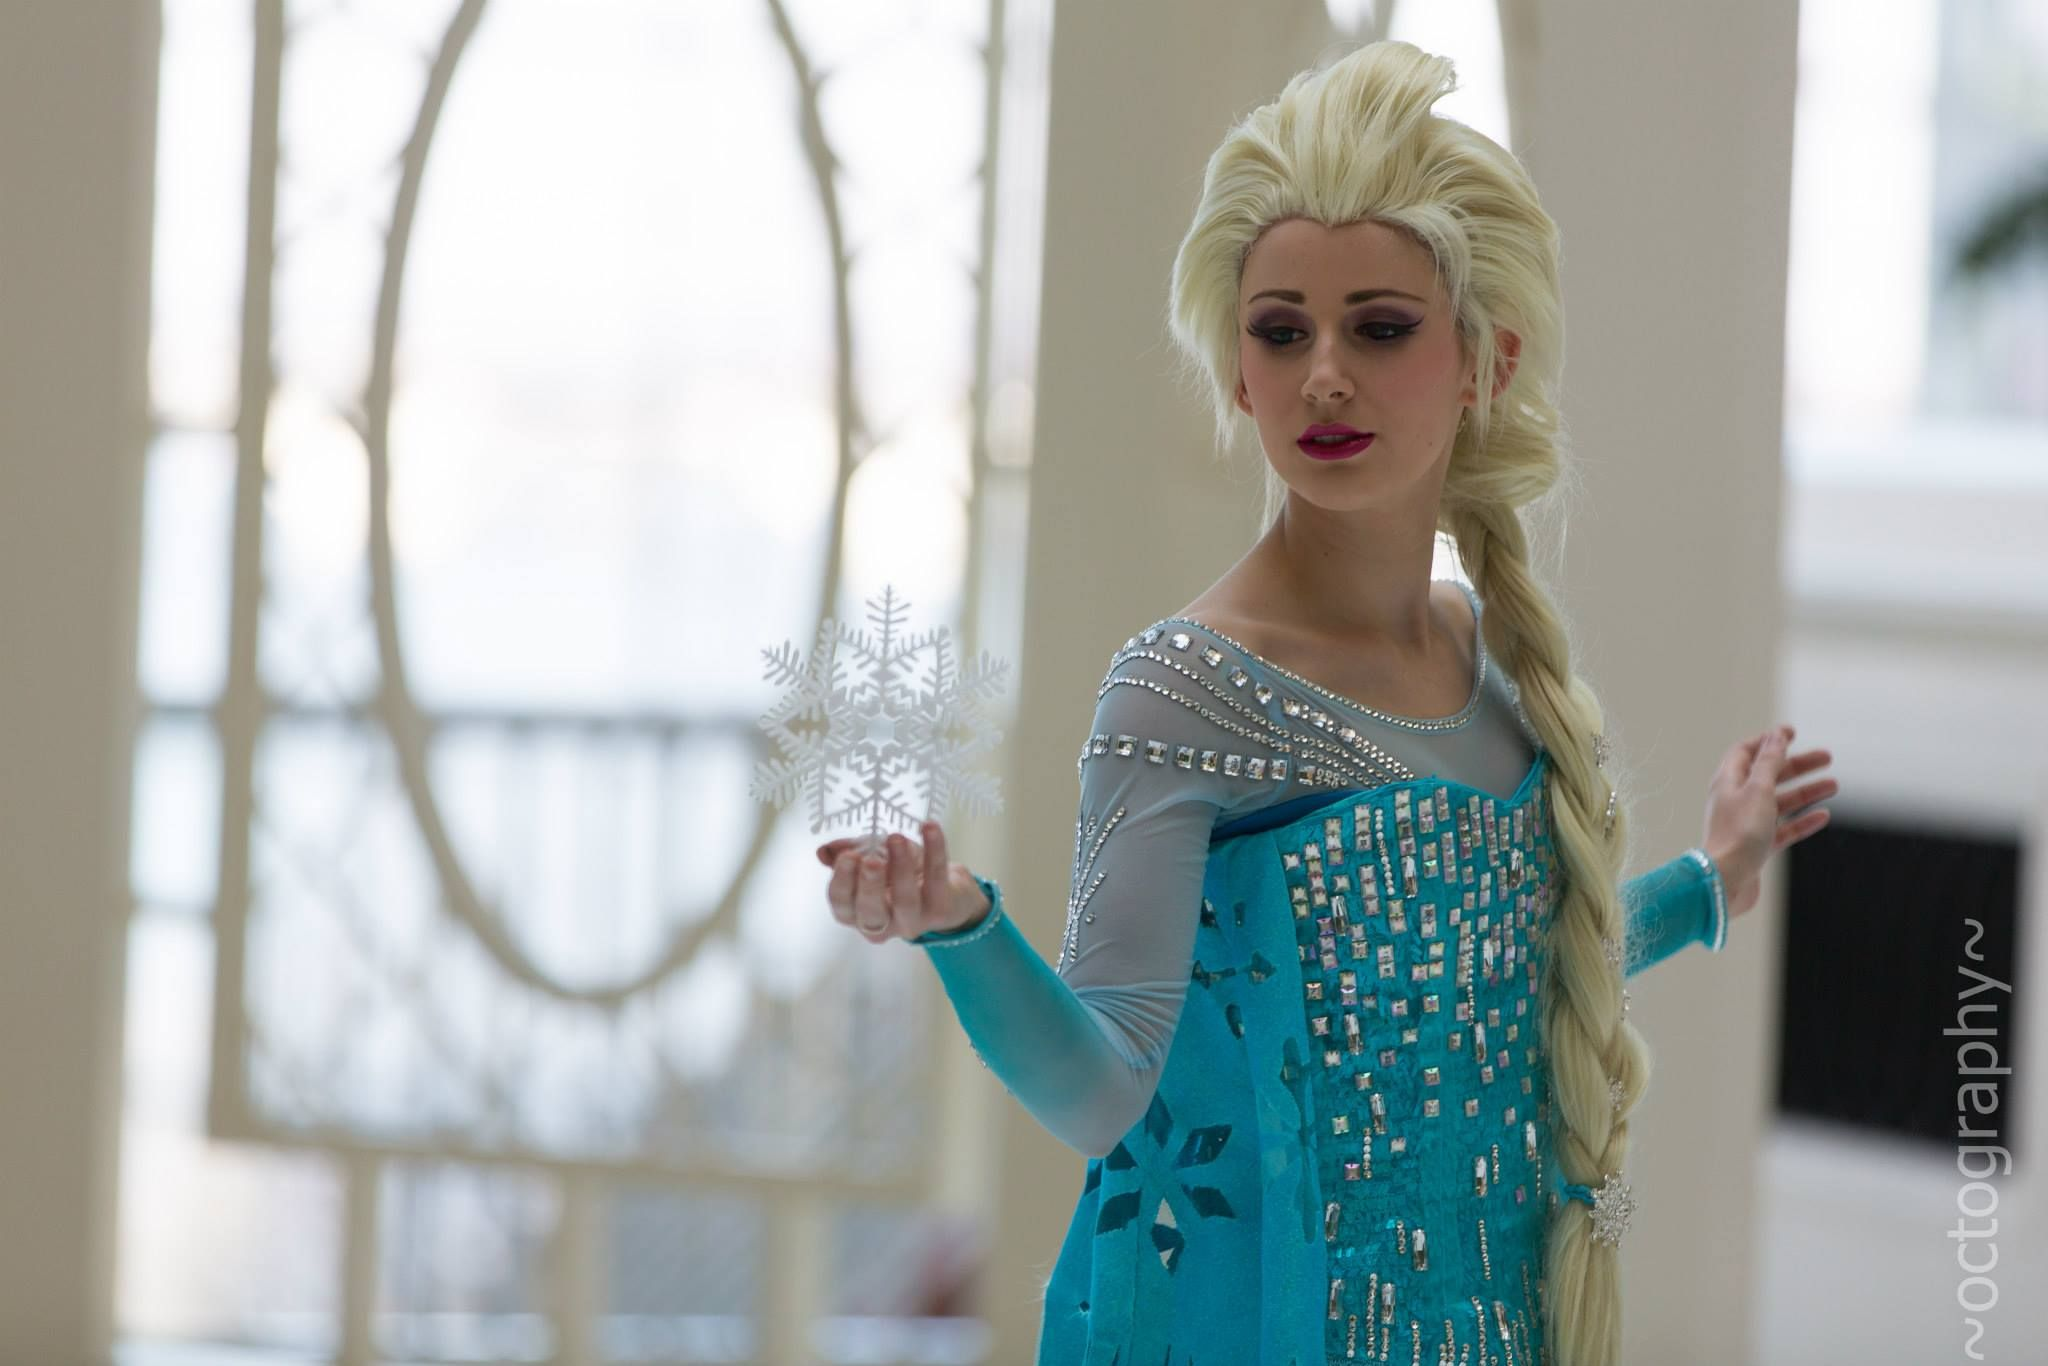 Elsa from Frozen by Dessi_desu | ACParadise.com | The undershirt was made using illusion mesh and she created templates for the rhinestone designs. The gradient on the bottoms of the sleeves was made using good ol' reliable floral spray.